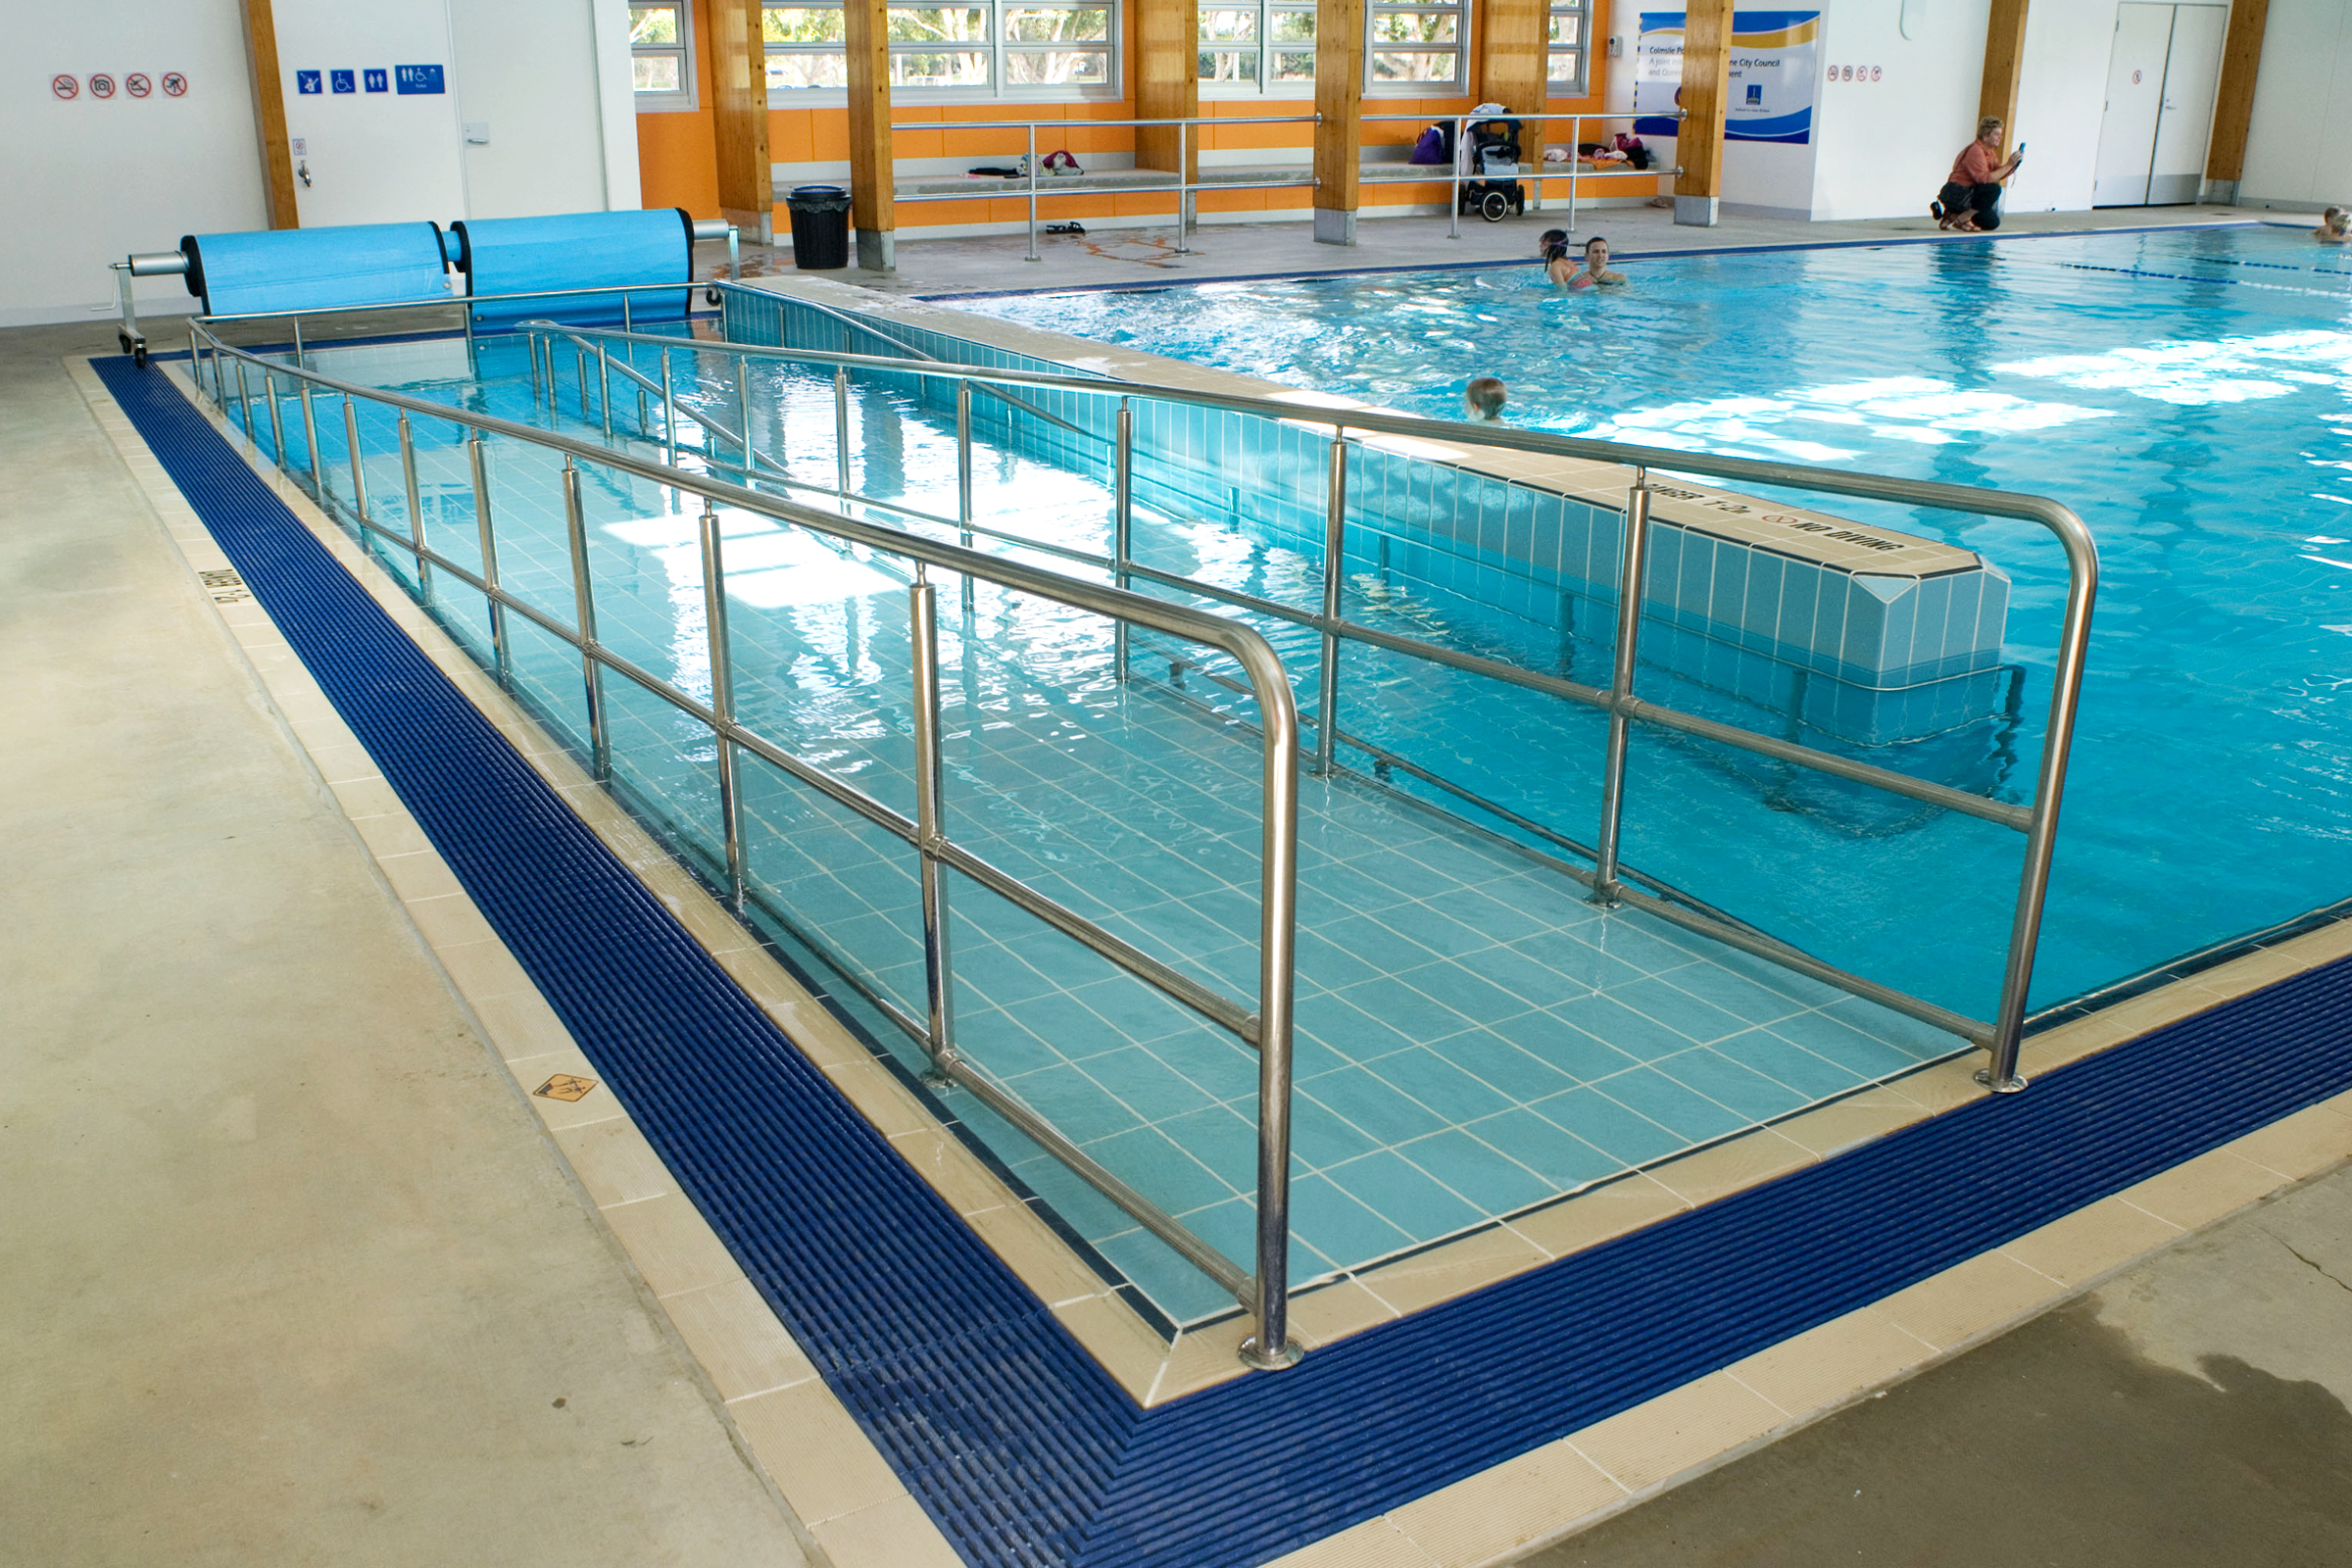 File:Colmslie Pool - indoor pool with disabled ramp (6983898375 ...